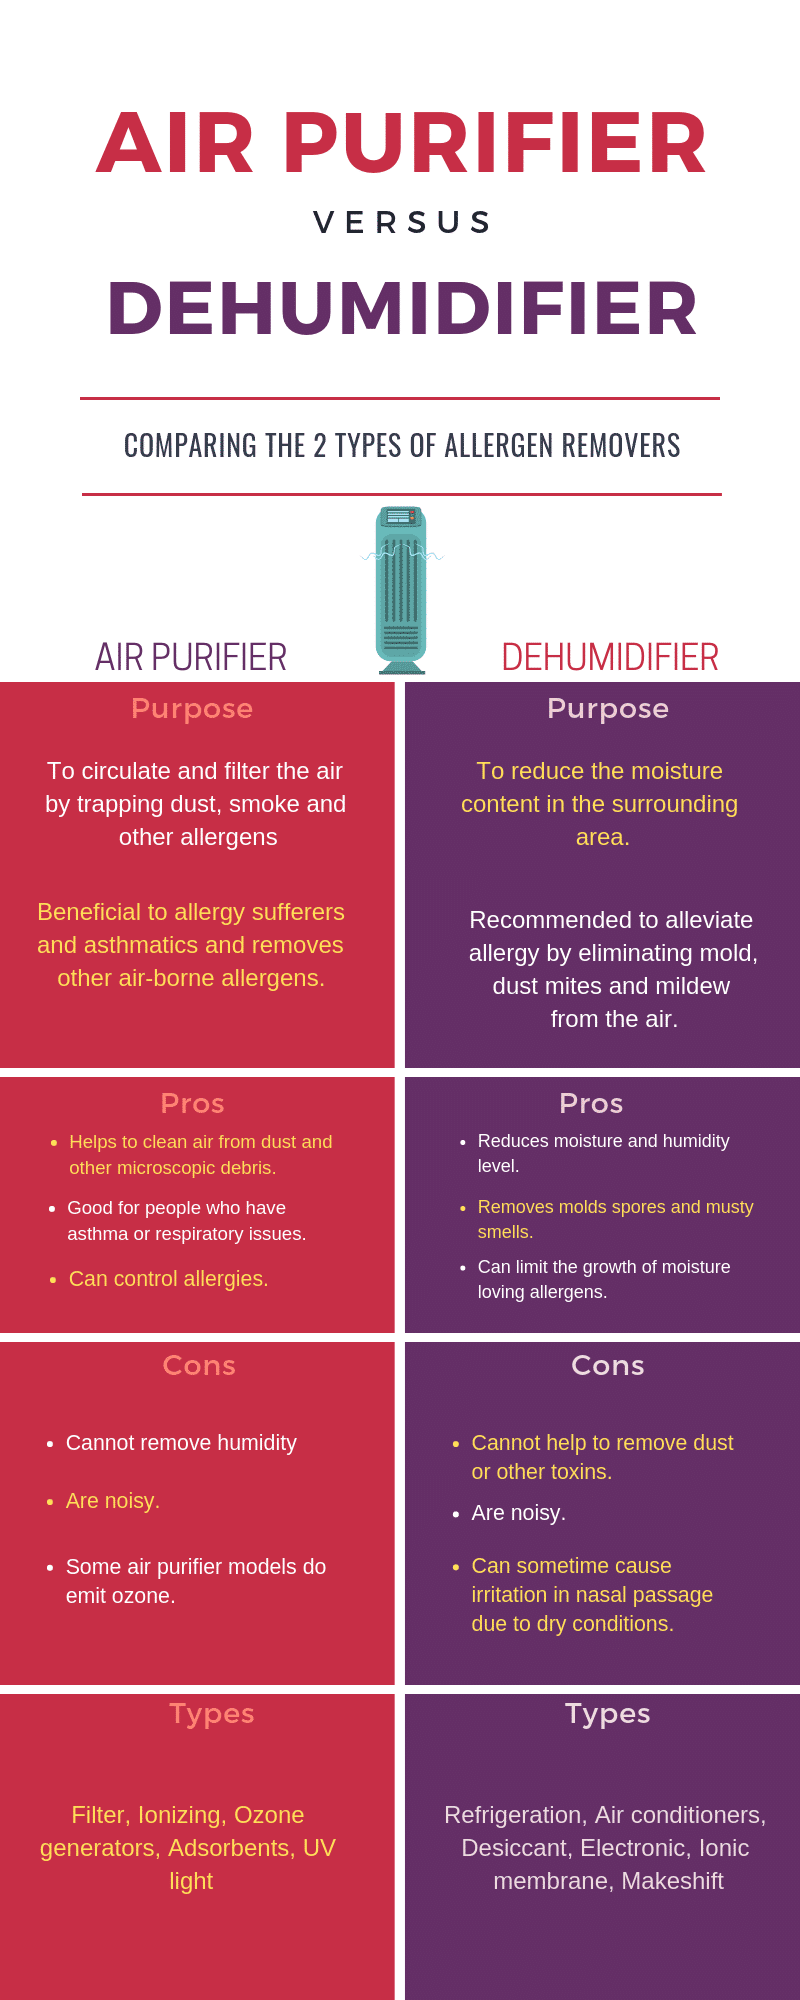 Air-Purifier-vs-dehumidifier-difference-and-comparision-infographics